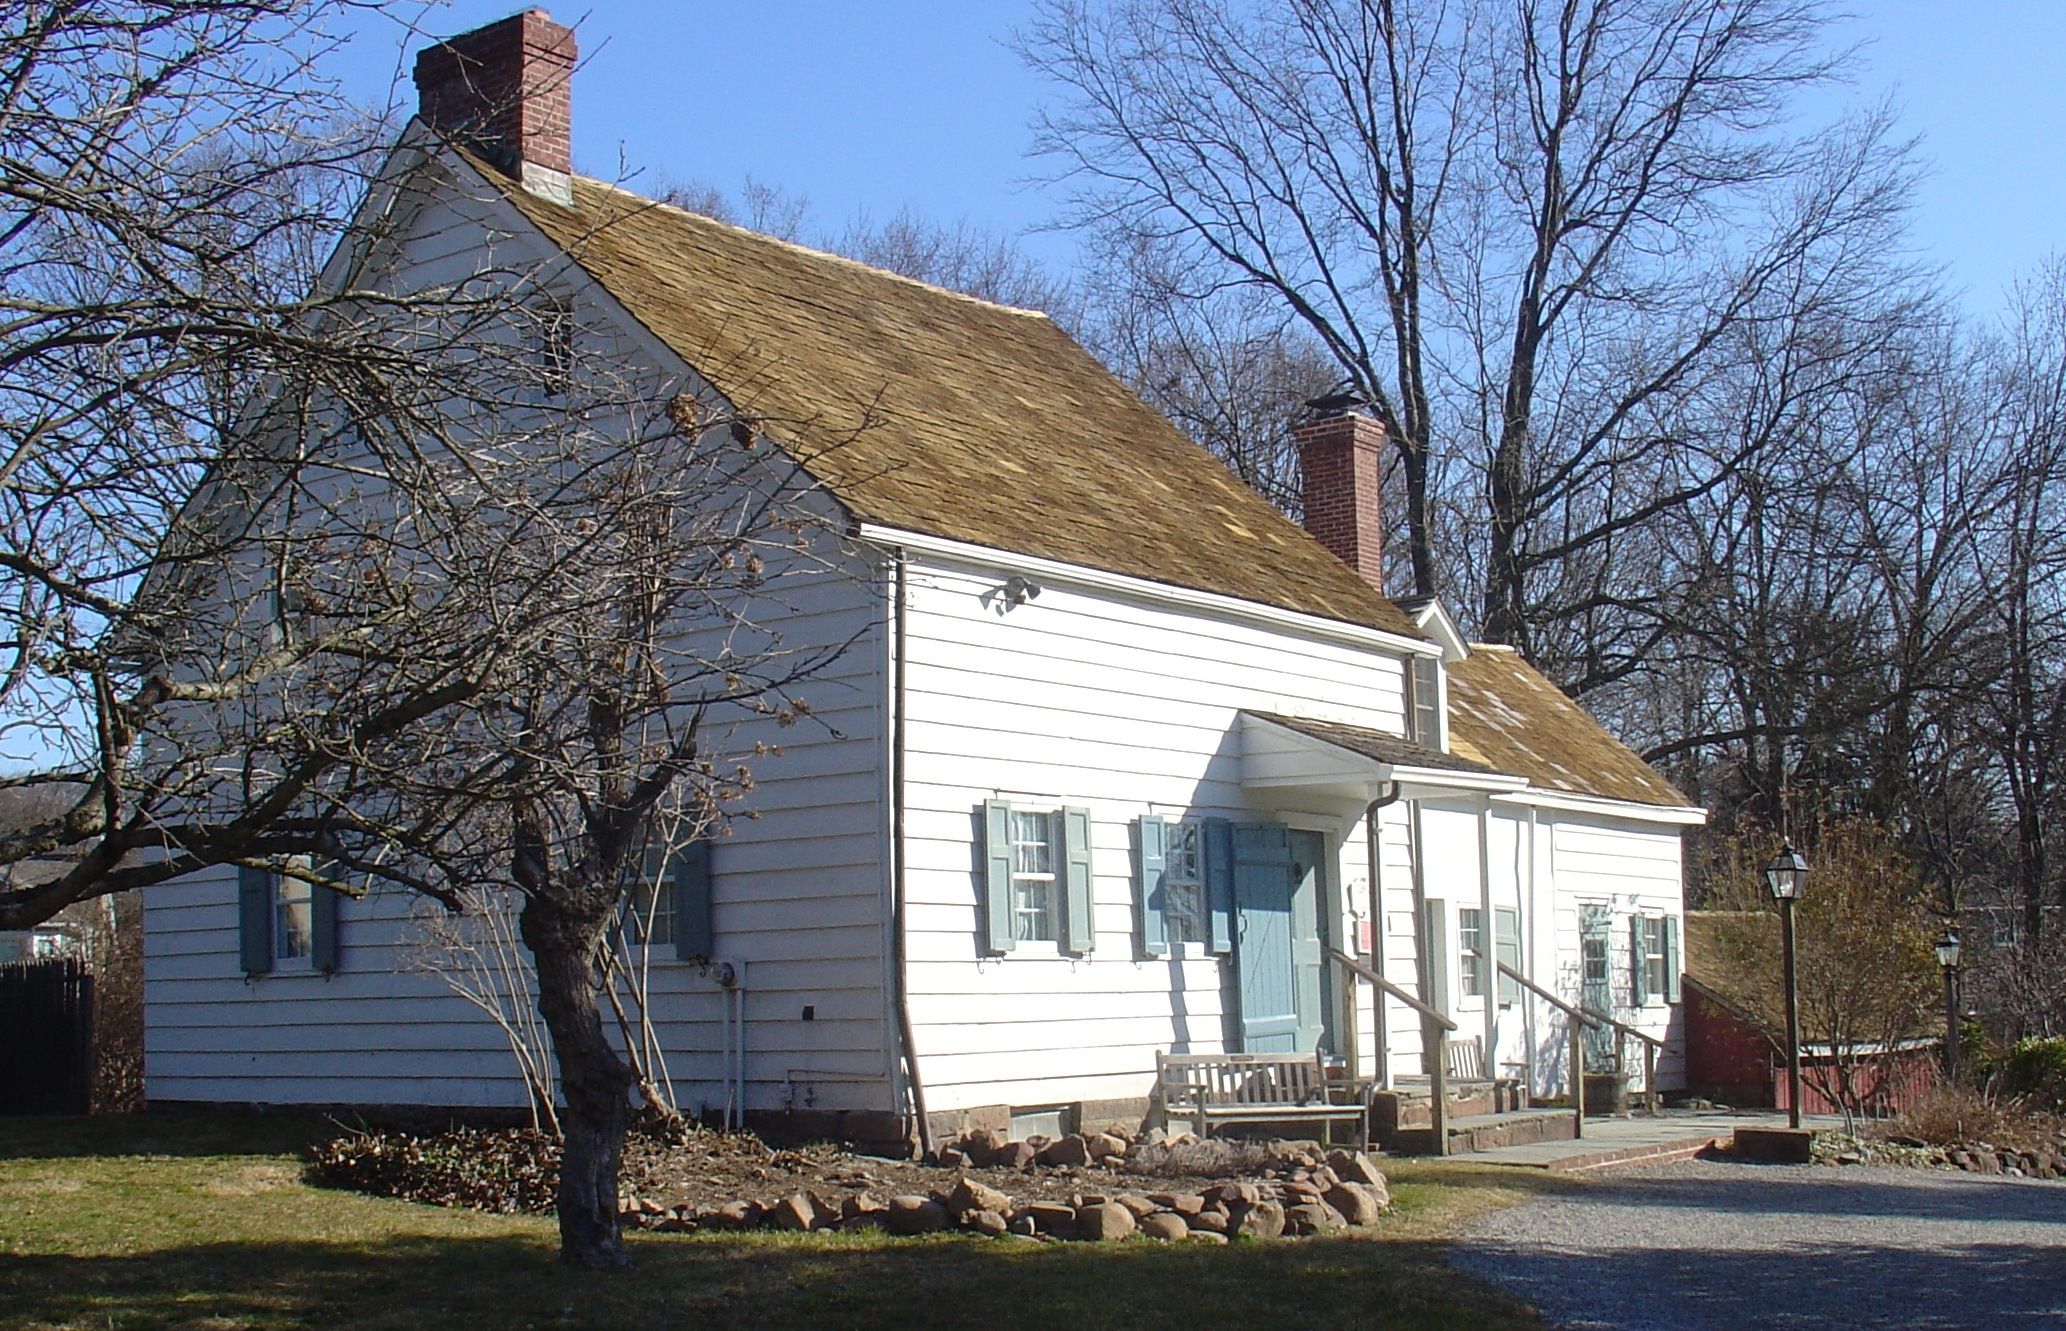 Maple Sugar Sunday at the Miller-Cory House Museum